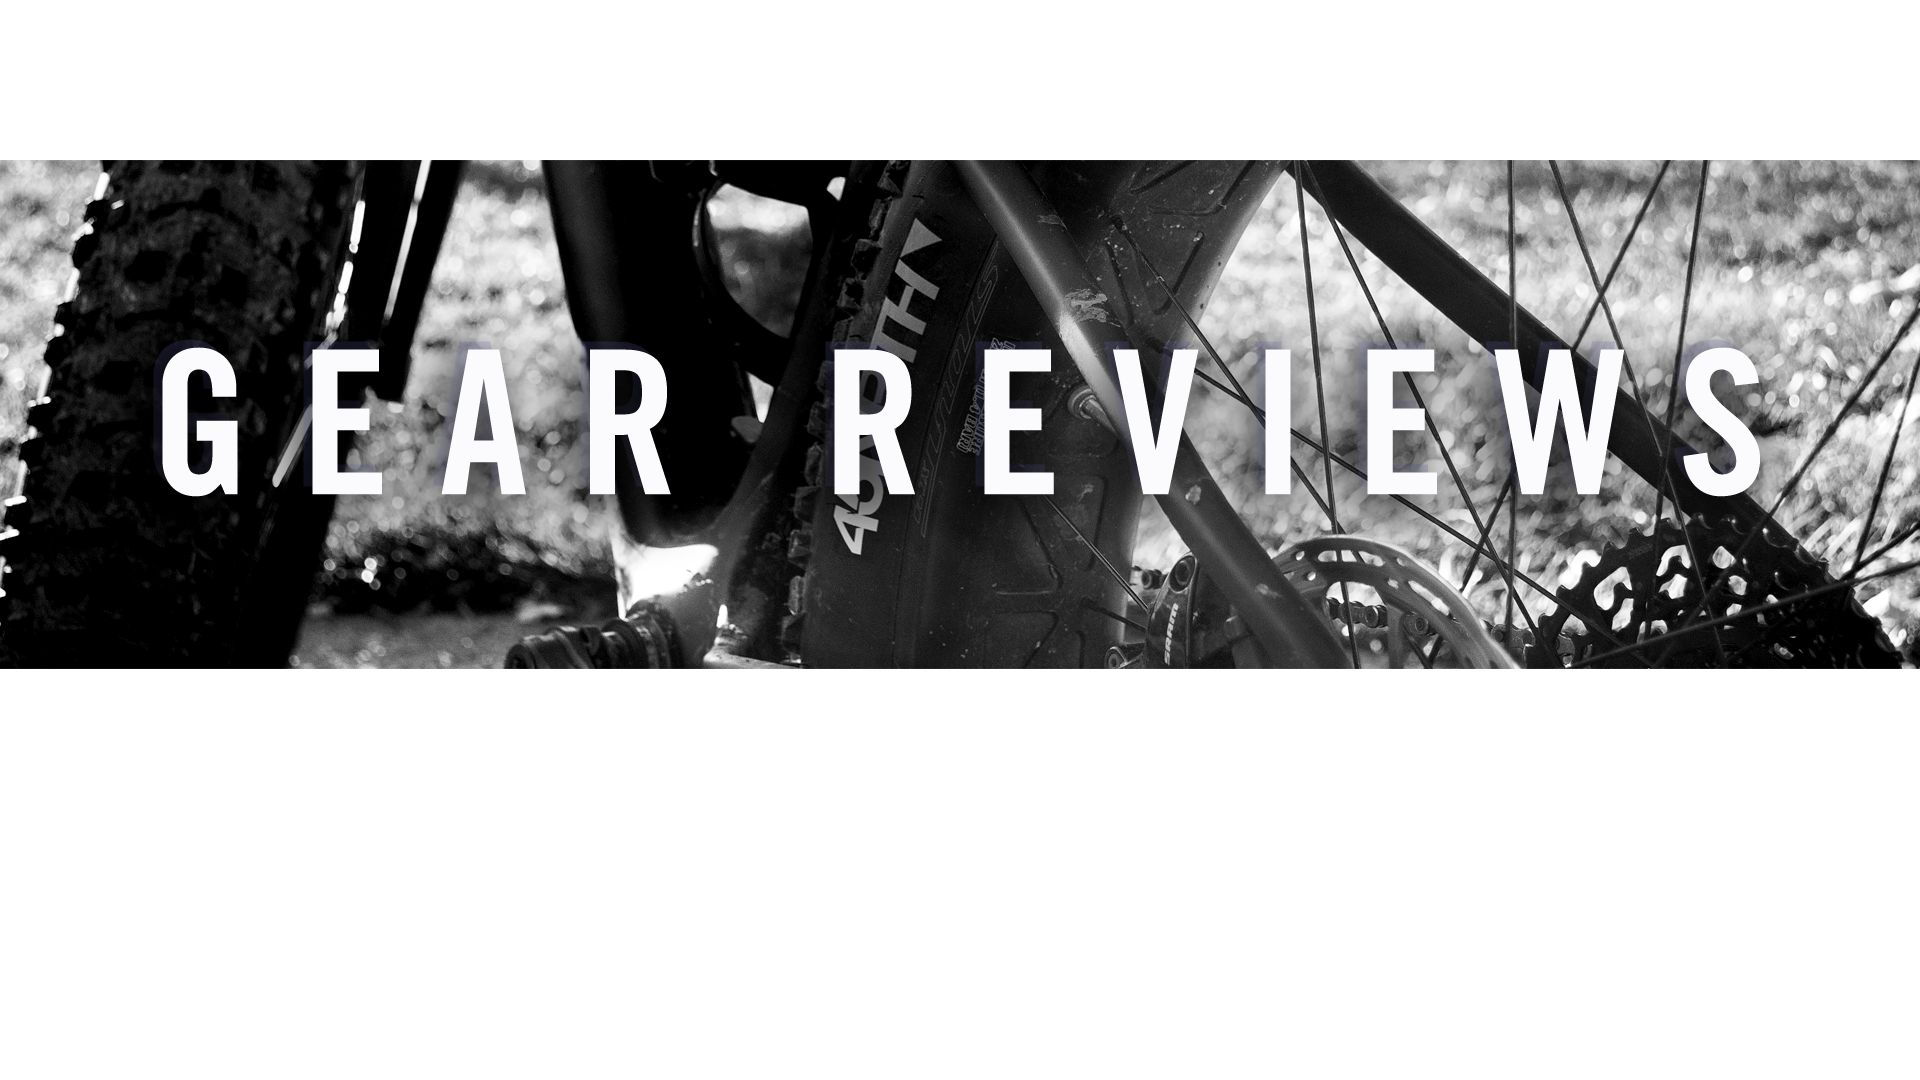 Gear_review_banner.png